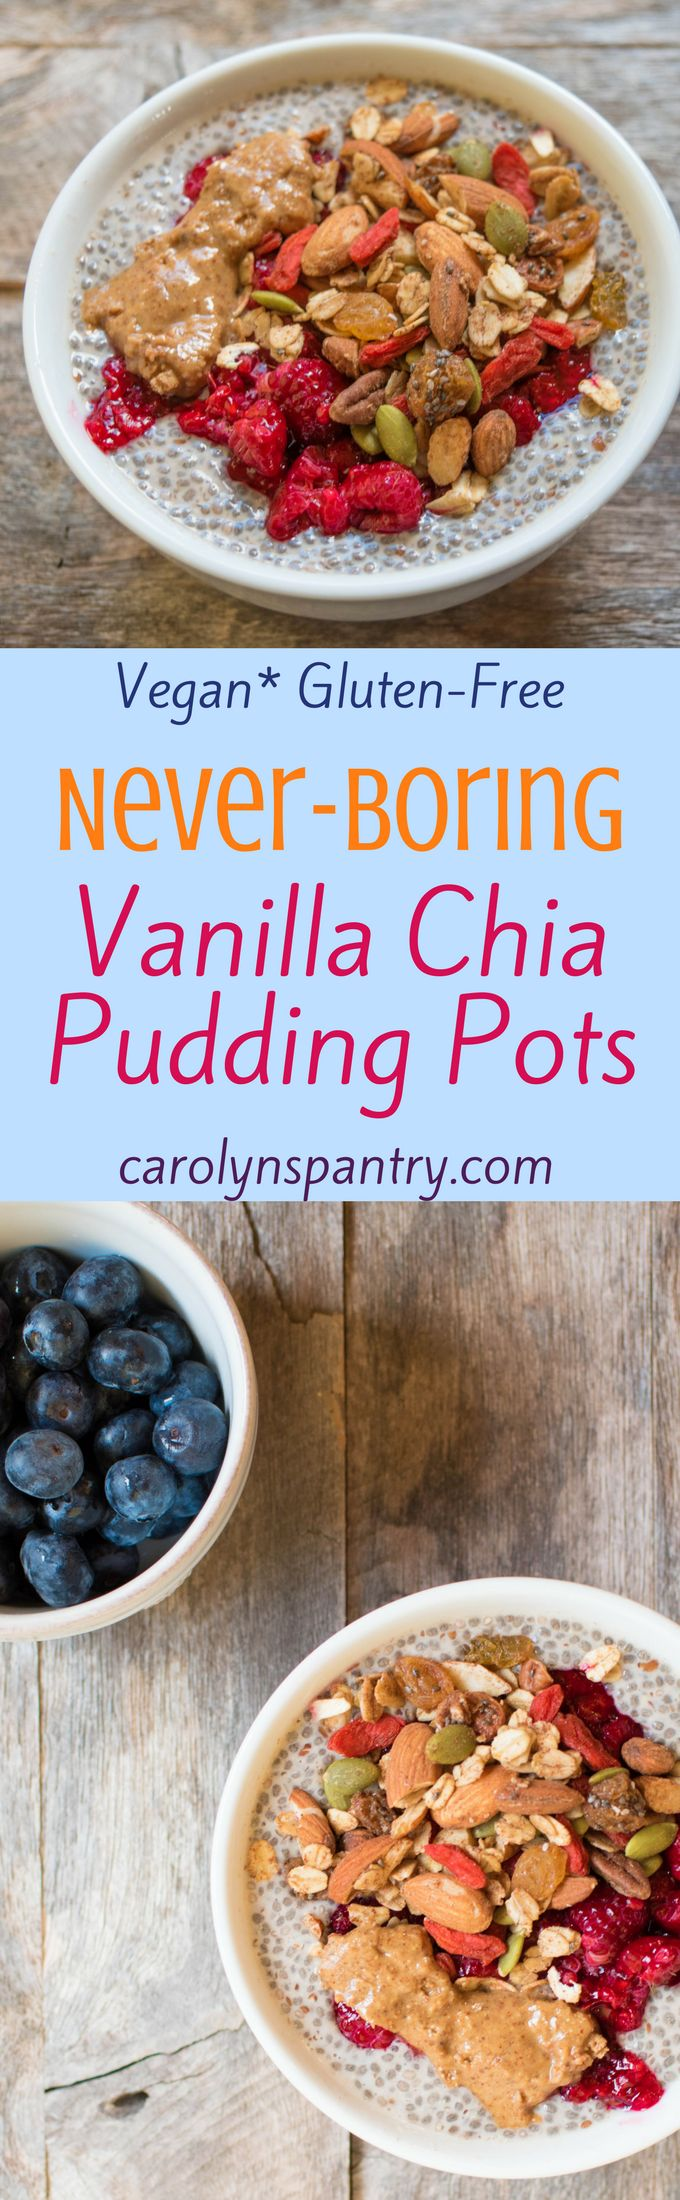 Vanilla Chia Pudding pots that are ALWAYS delicious and NEVER boring! This light, easy, pant-based and gluten-free breakfast can be ready in under 10 minutes and is the perfect way to start your day. It's wonderfully creamy when made right and comes loaded with fiber, omega-3s, protein, and iron to keep you going strong throughout the day.